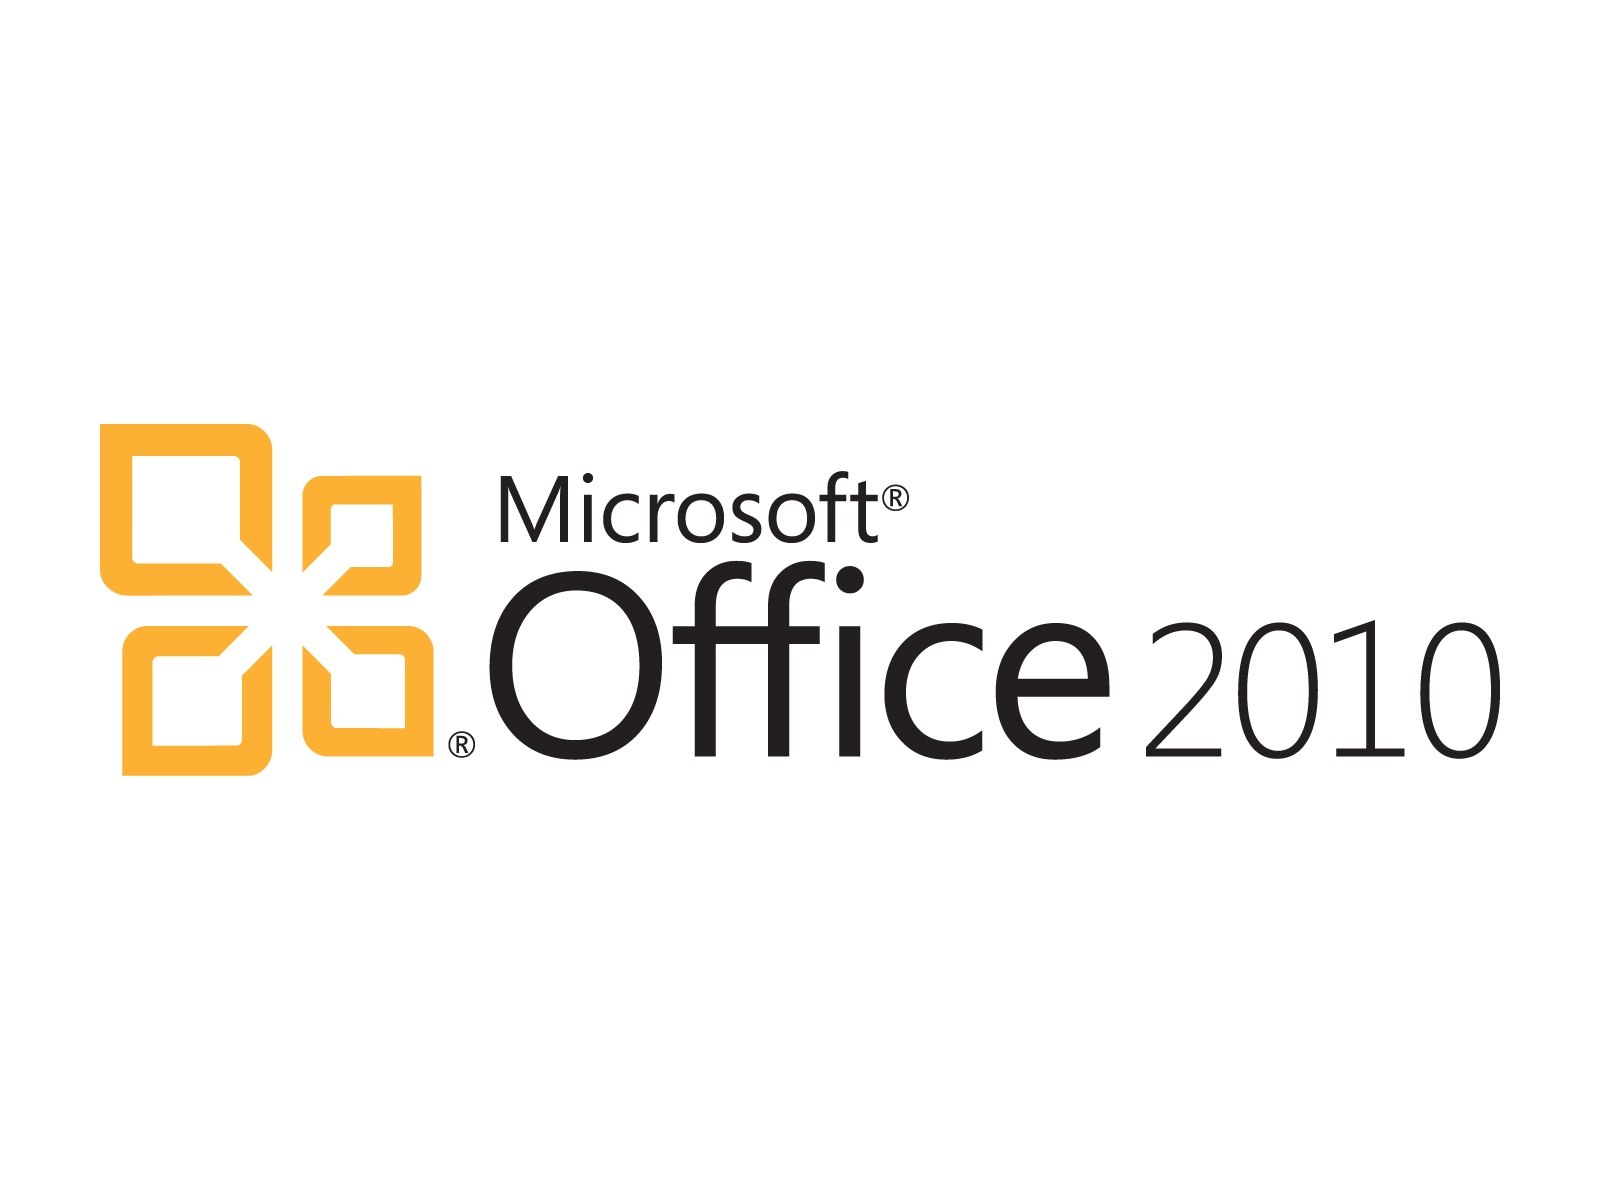 Office 2010 Pro Plus Microsoft Office 2010 Activator No Product Key Is Needed